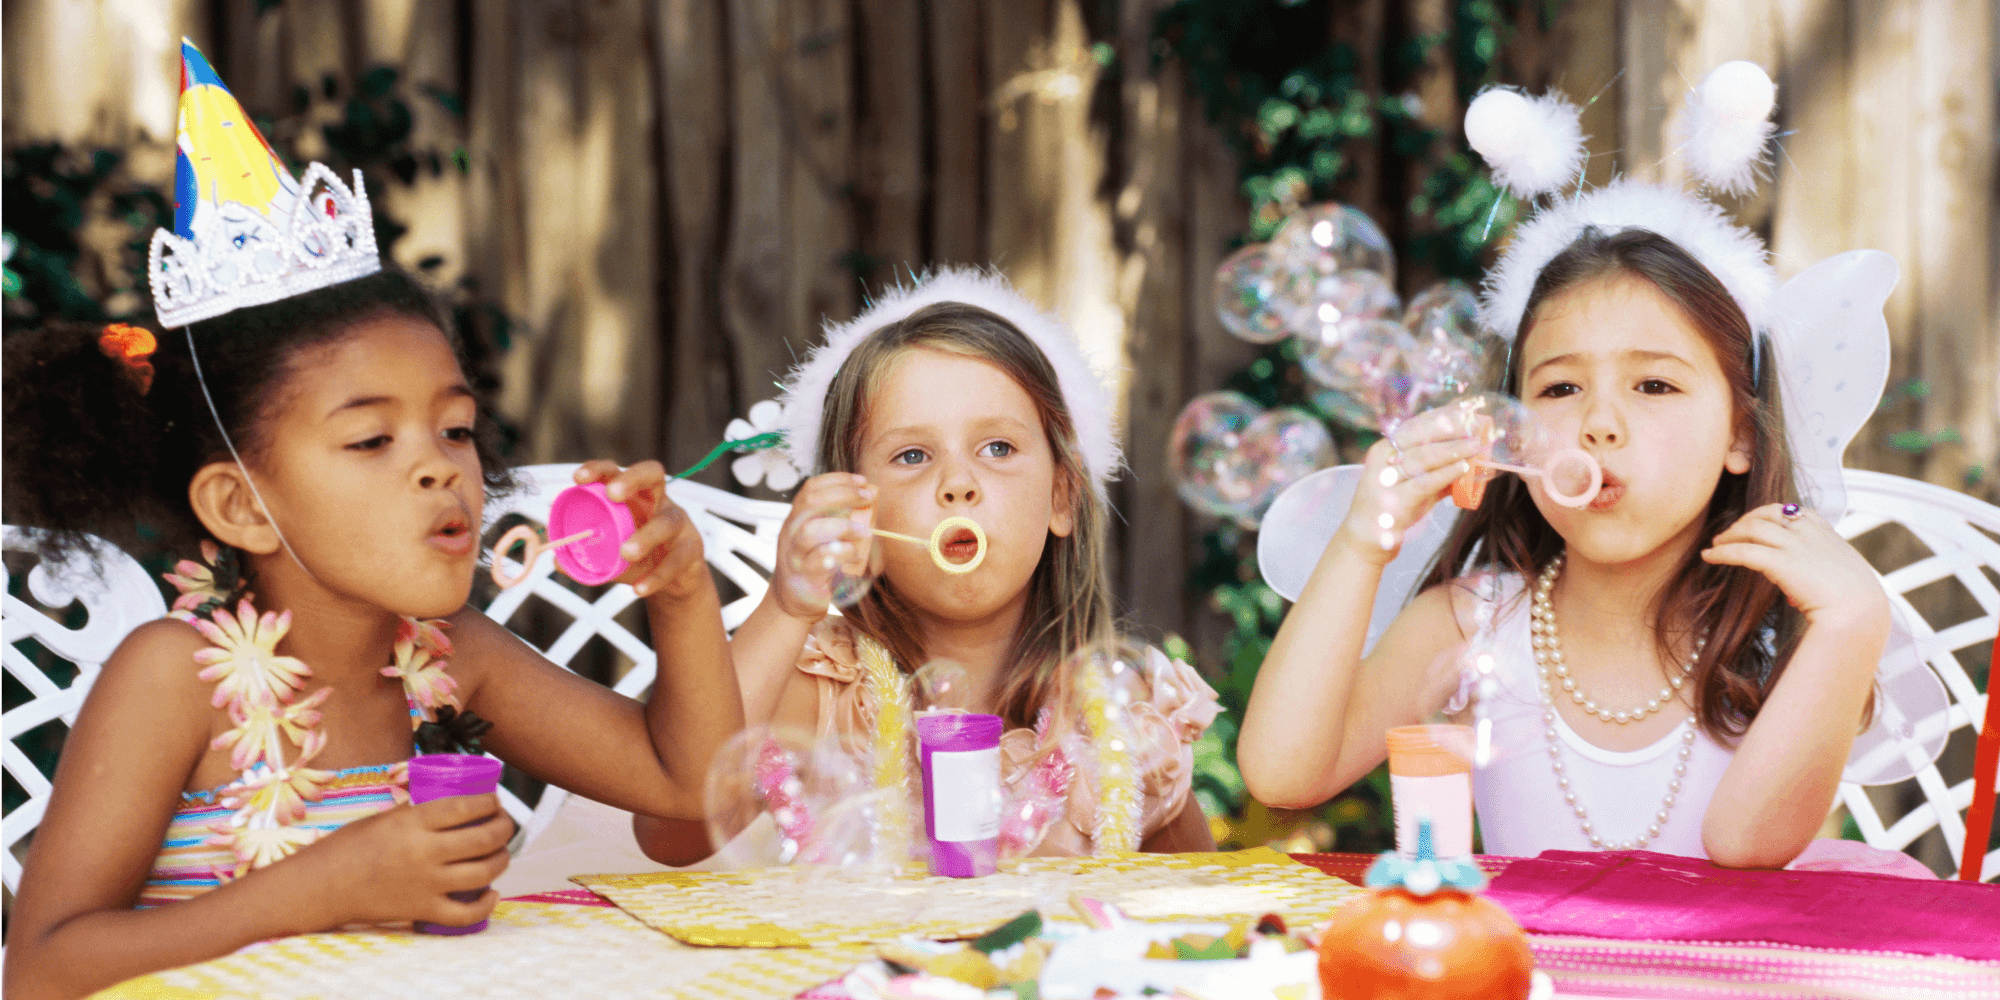 Girls blowing bubbles at a birthday party